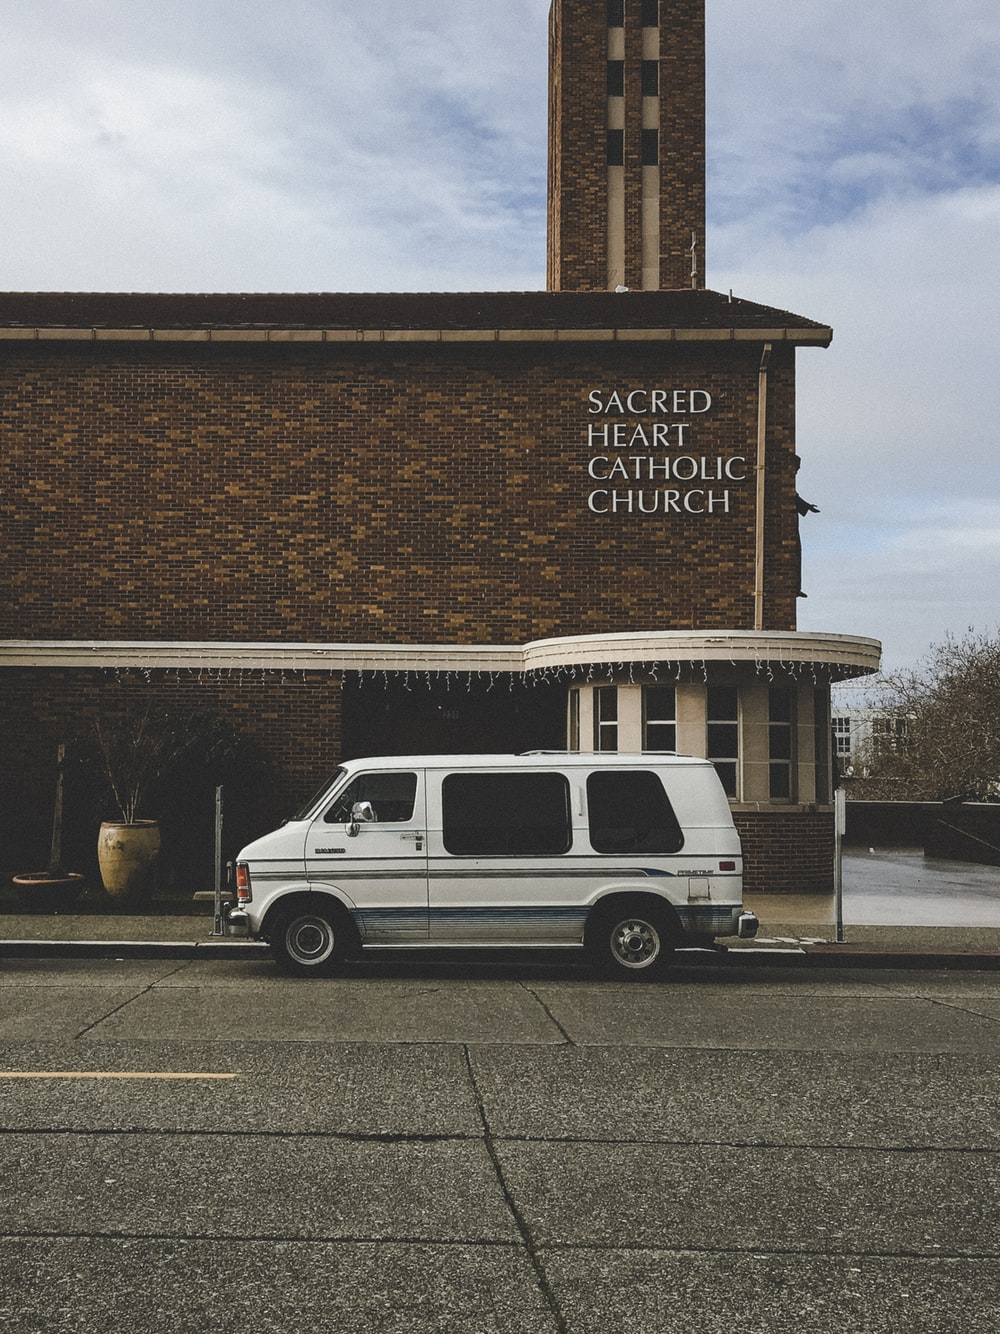 white custom van parked in front of church